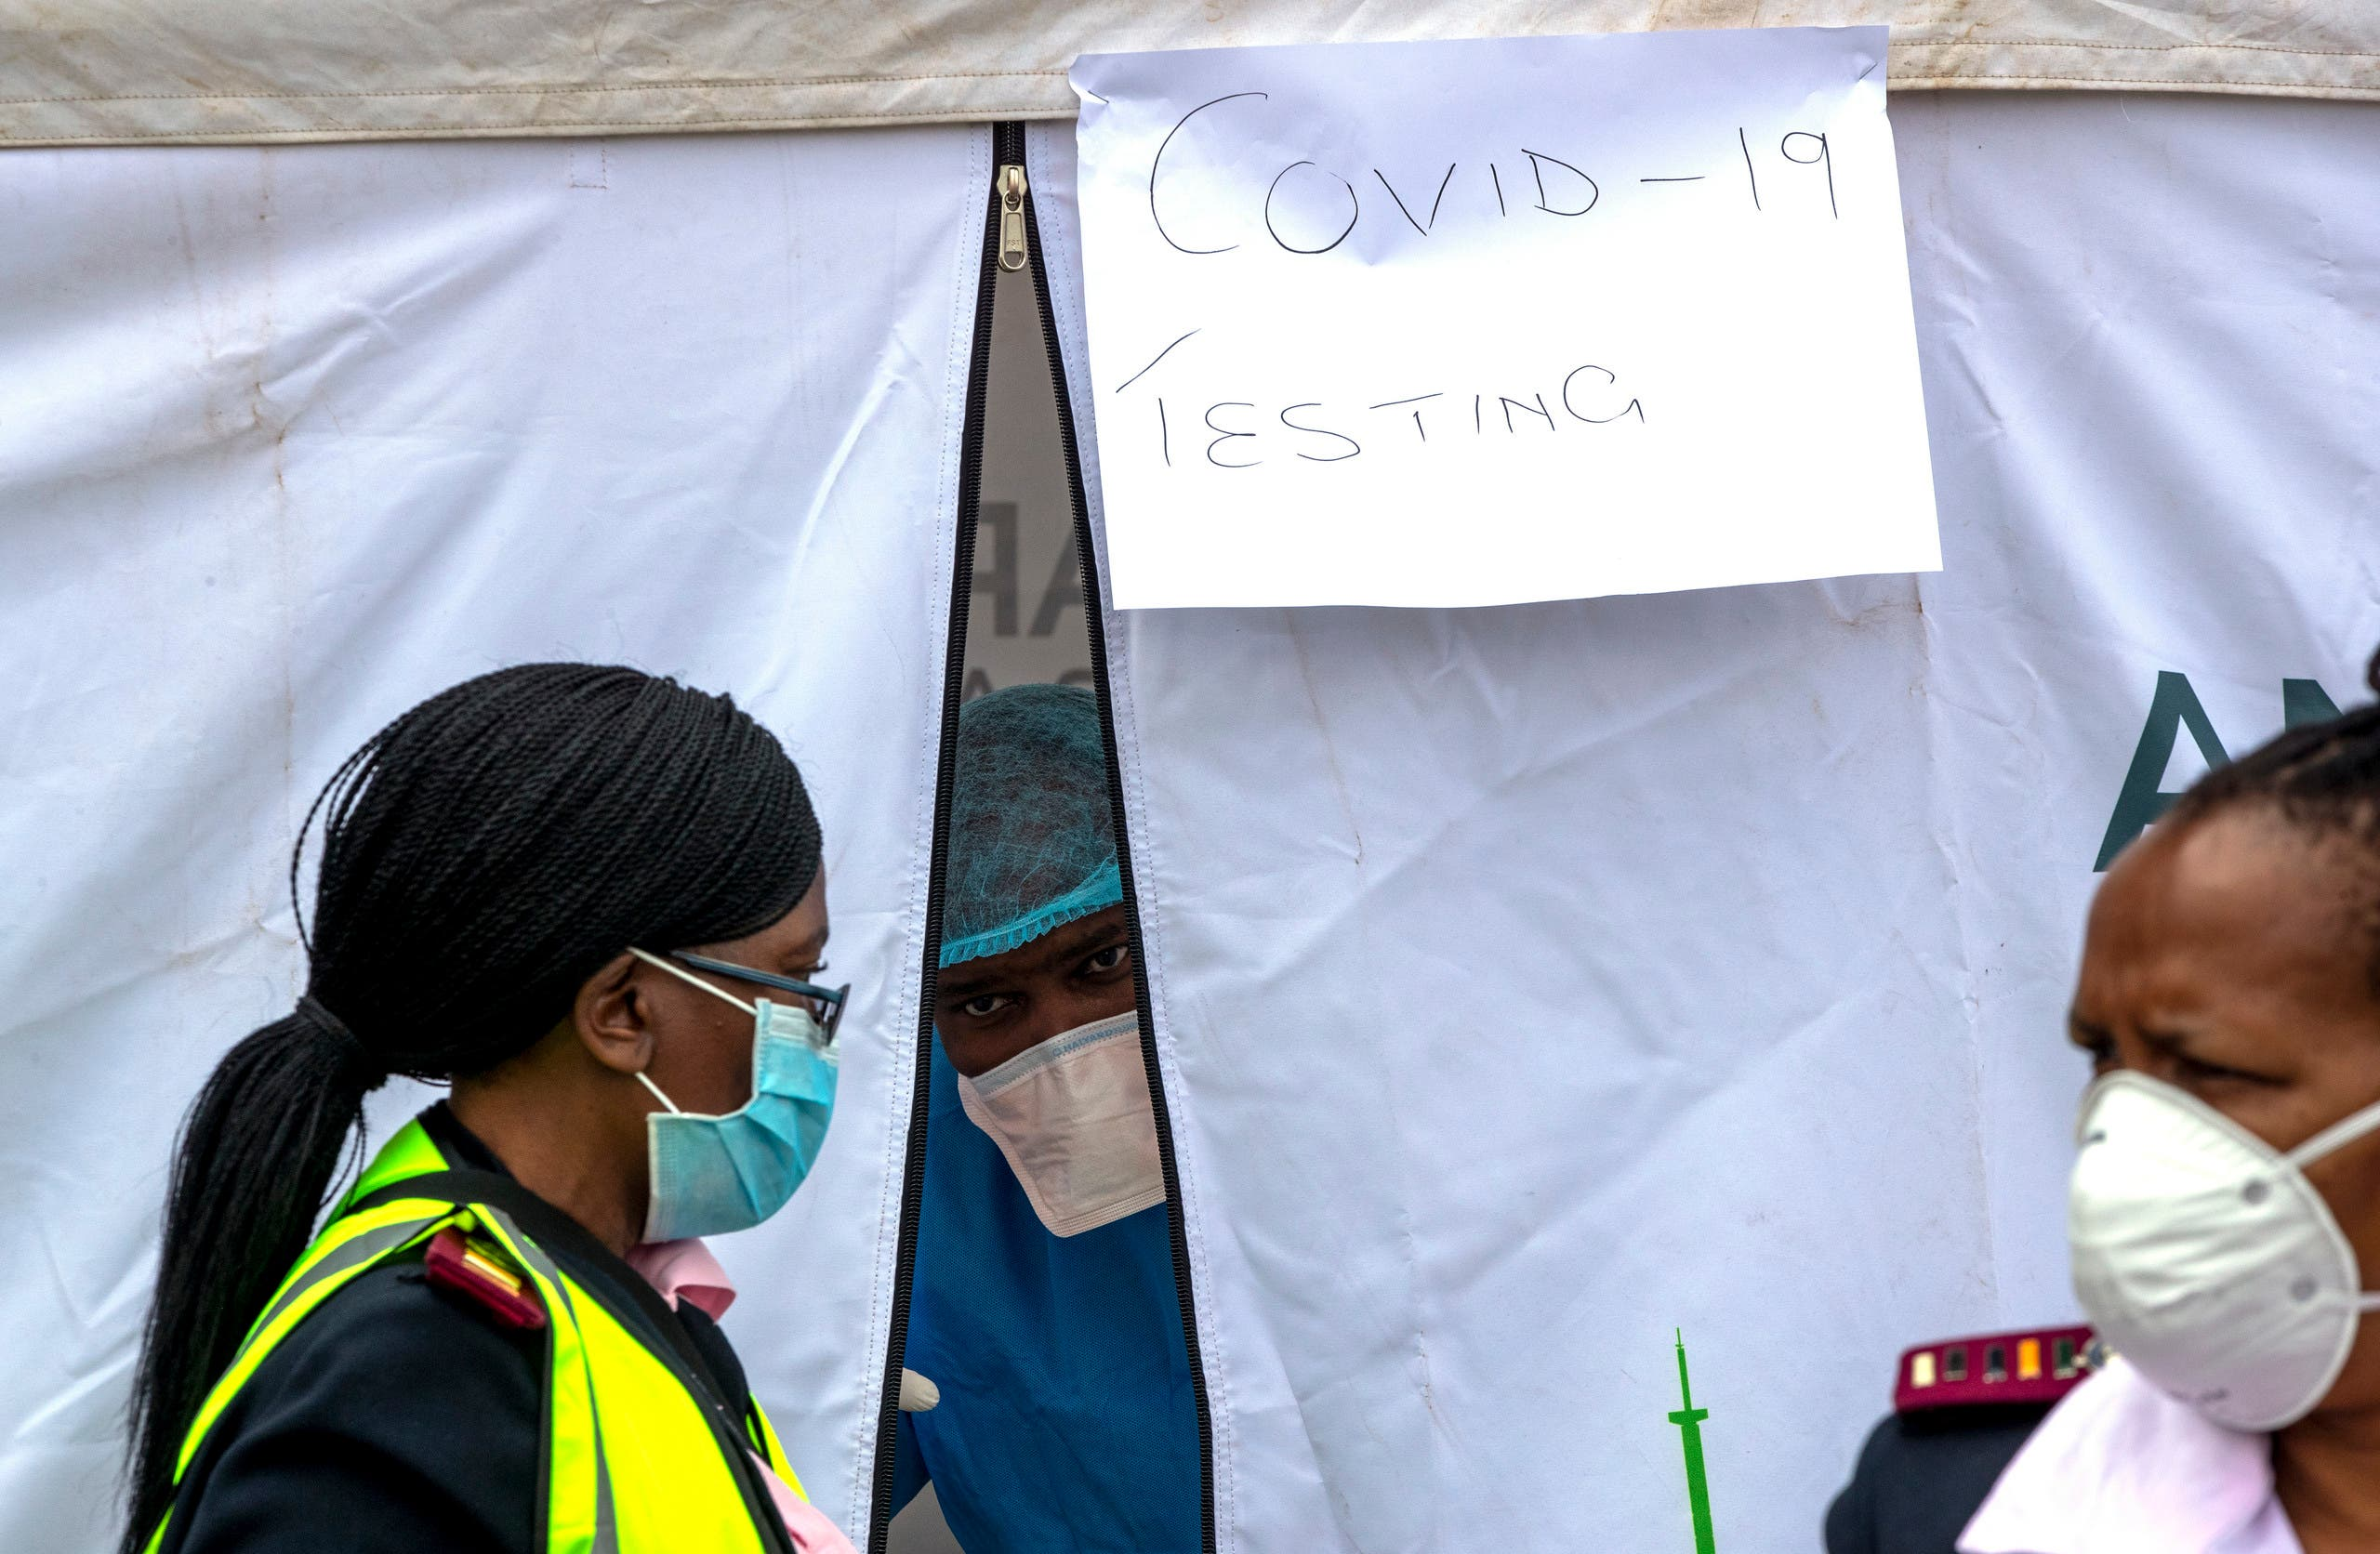 A health worker wearing personal protective gear inside a testing tent, gestures colleagues during the screening and testing for COVID-19, in Lenasia, south of Johannesburg, South Africa on April 8, 2020. (AP)